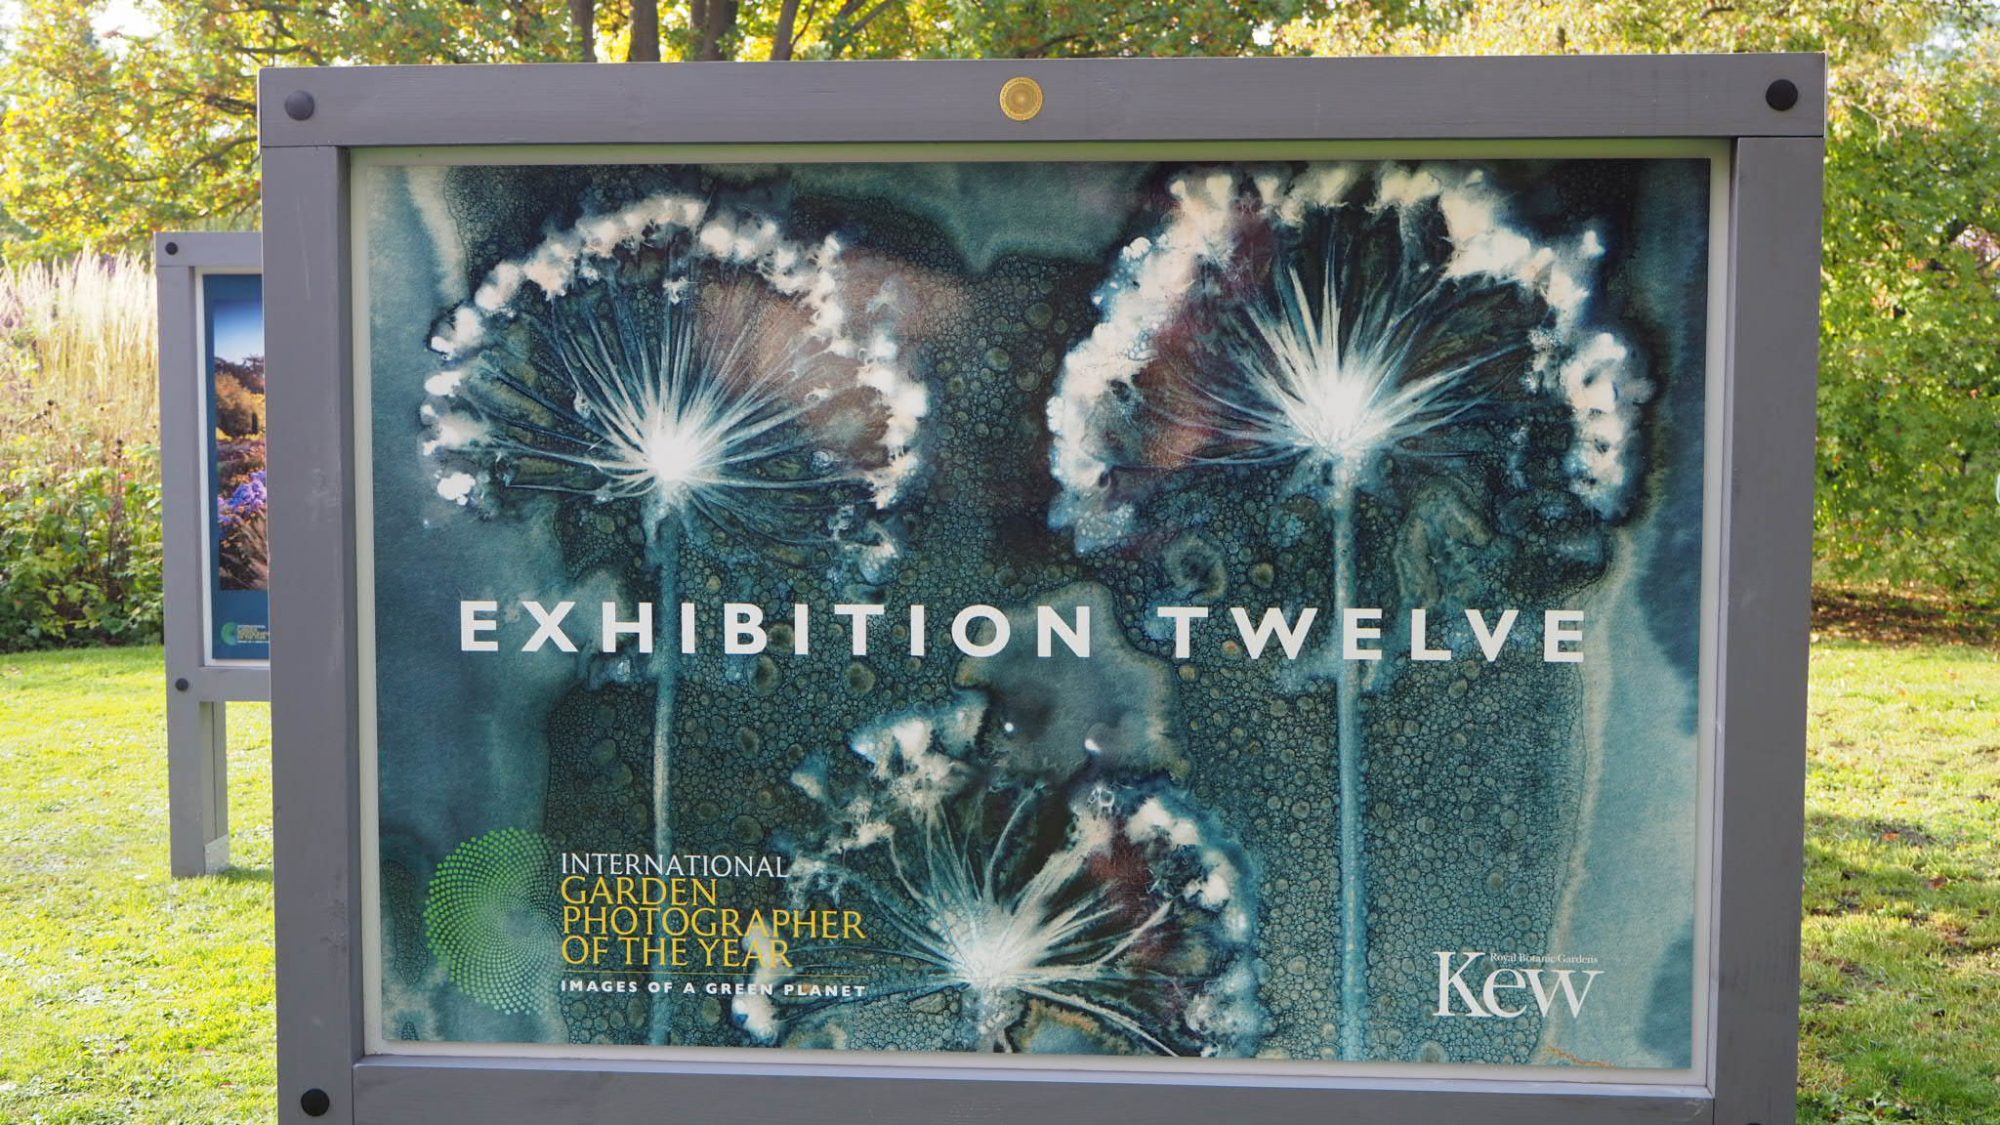 Exhibition Twelve exhibited in the Autumn Garden